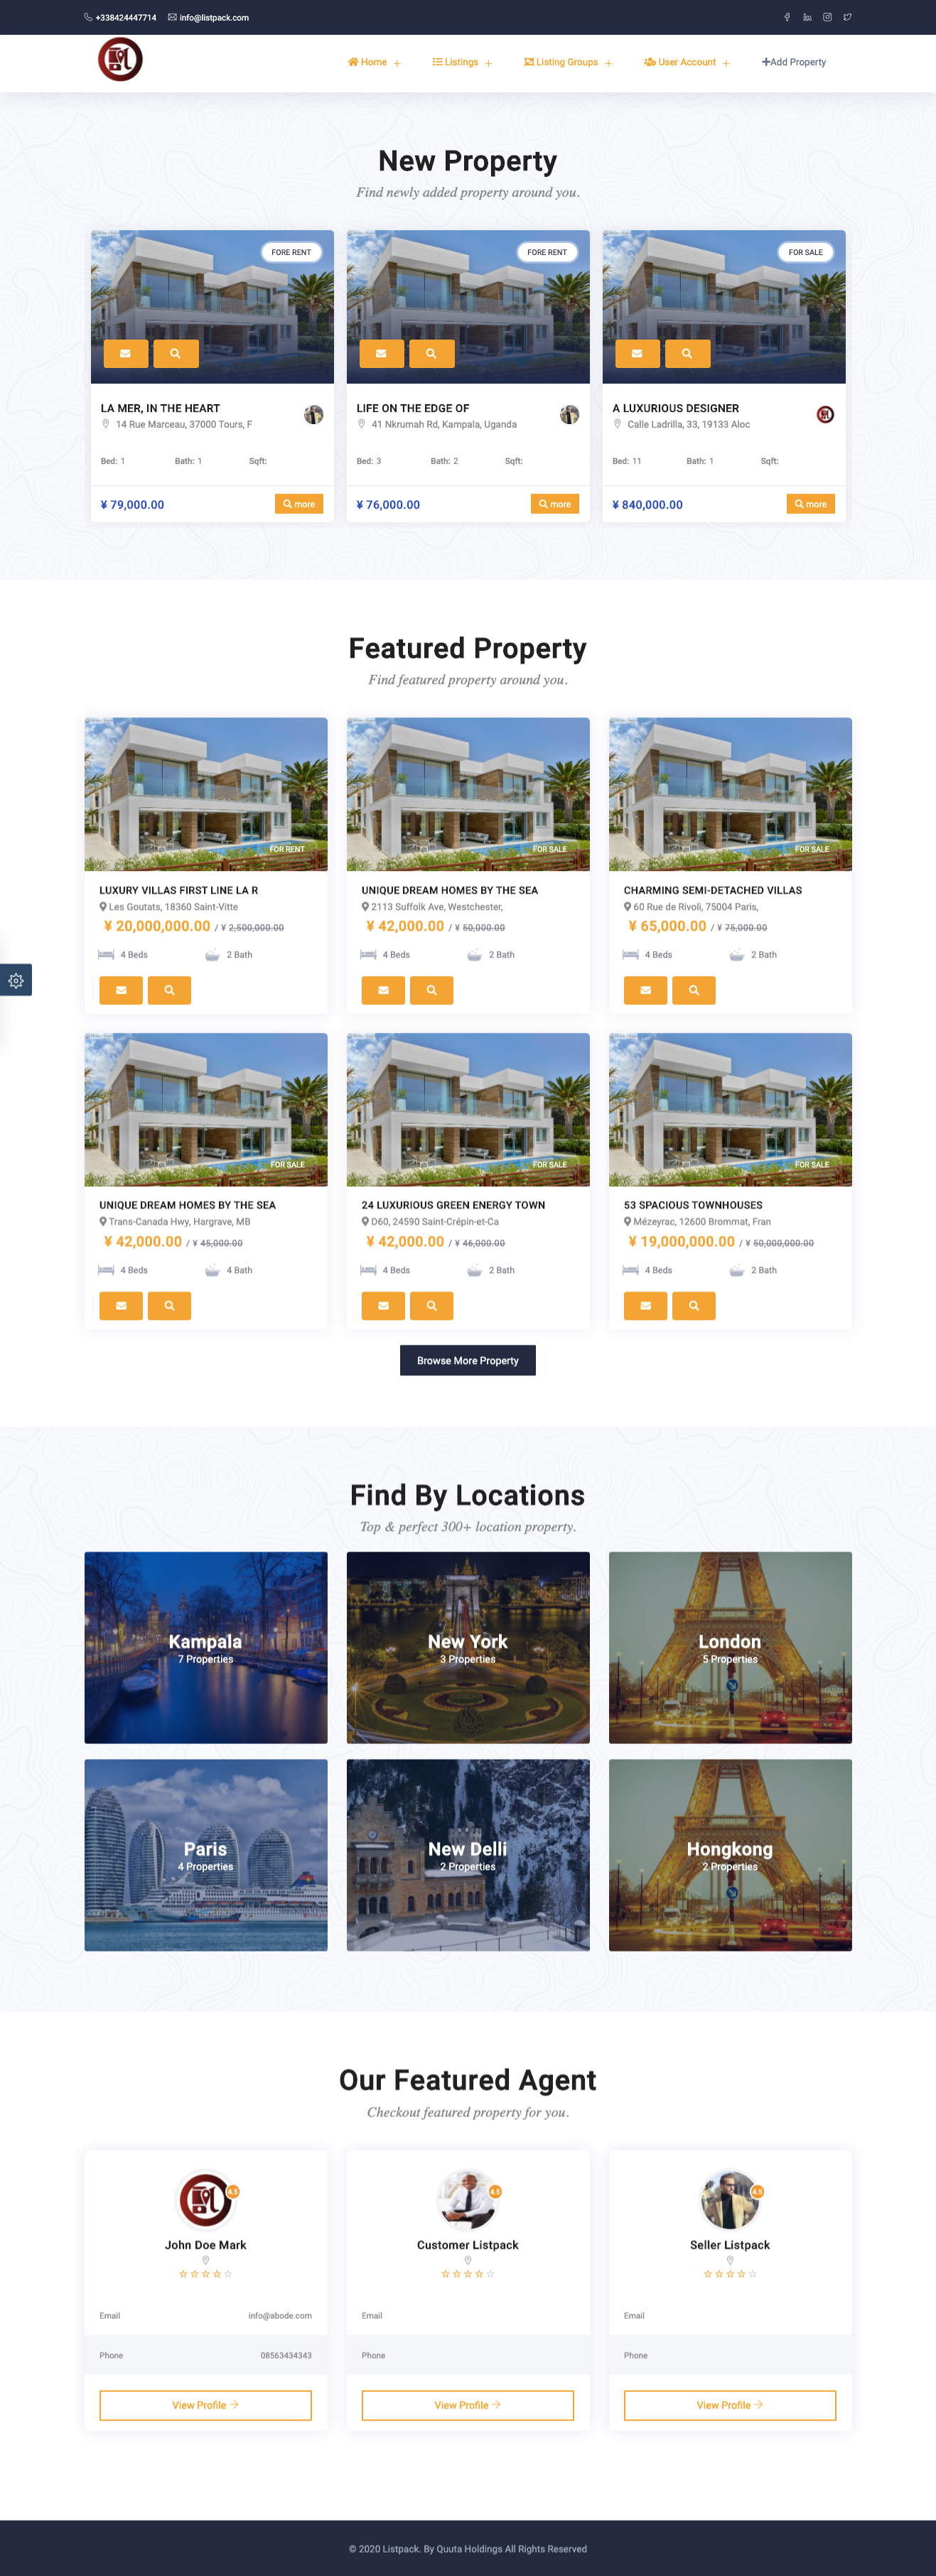 Listpack Ionic 4 Classified Ads  Android  + IOS + Frontend + Backend - 5